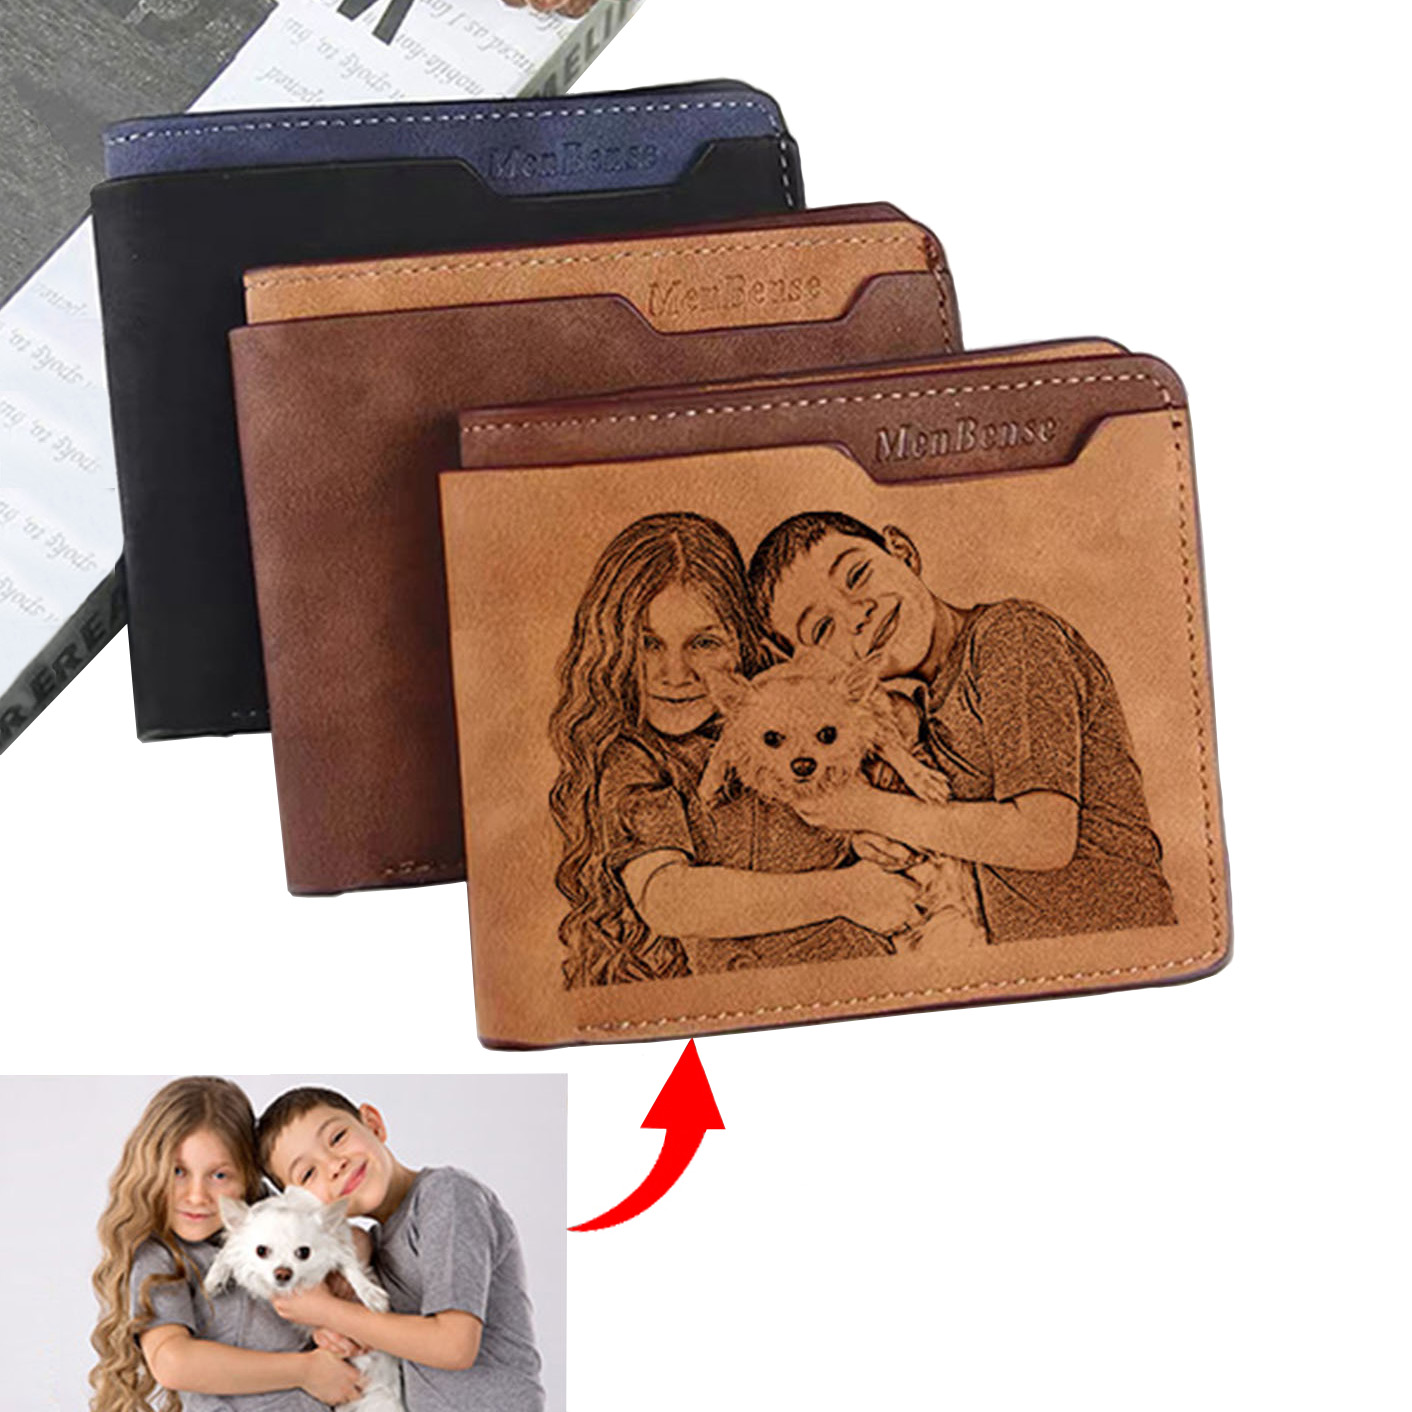 Engraving Wallet Men's Double Frosted Waterproof Short Multifunctional  Fashion Casual Wallet Customize Picture Purse Gift